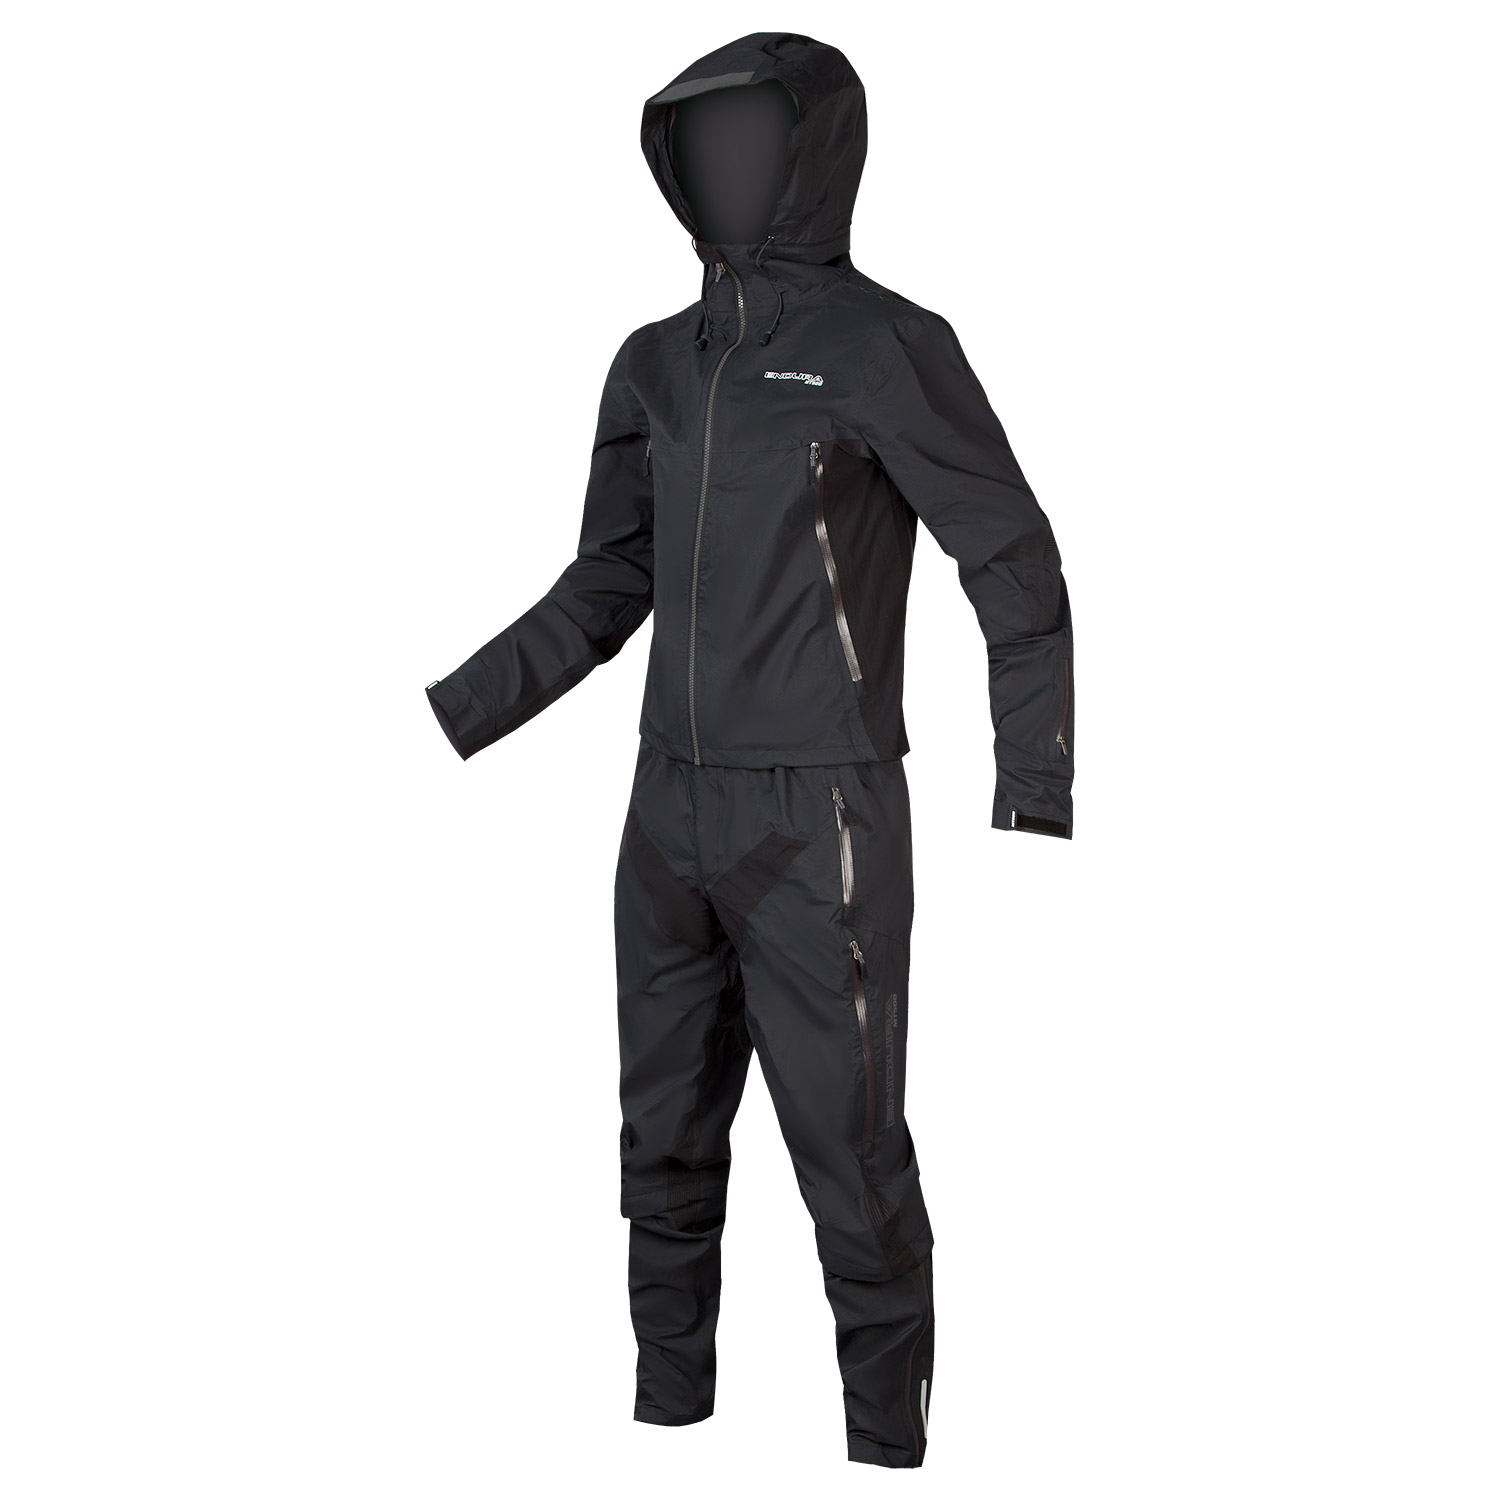 MT500 Waterproof Suit front